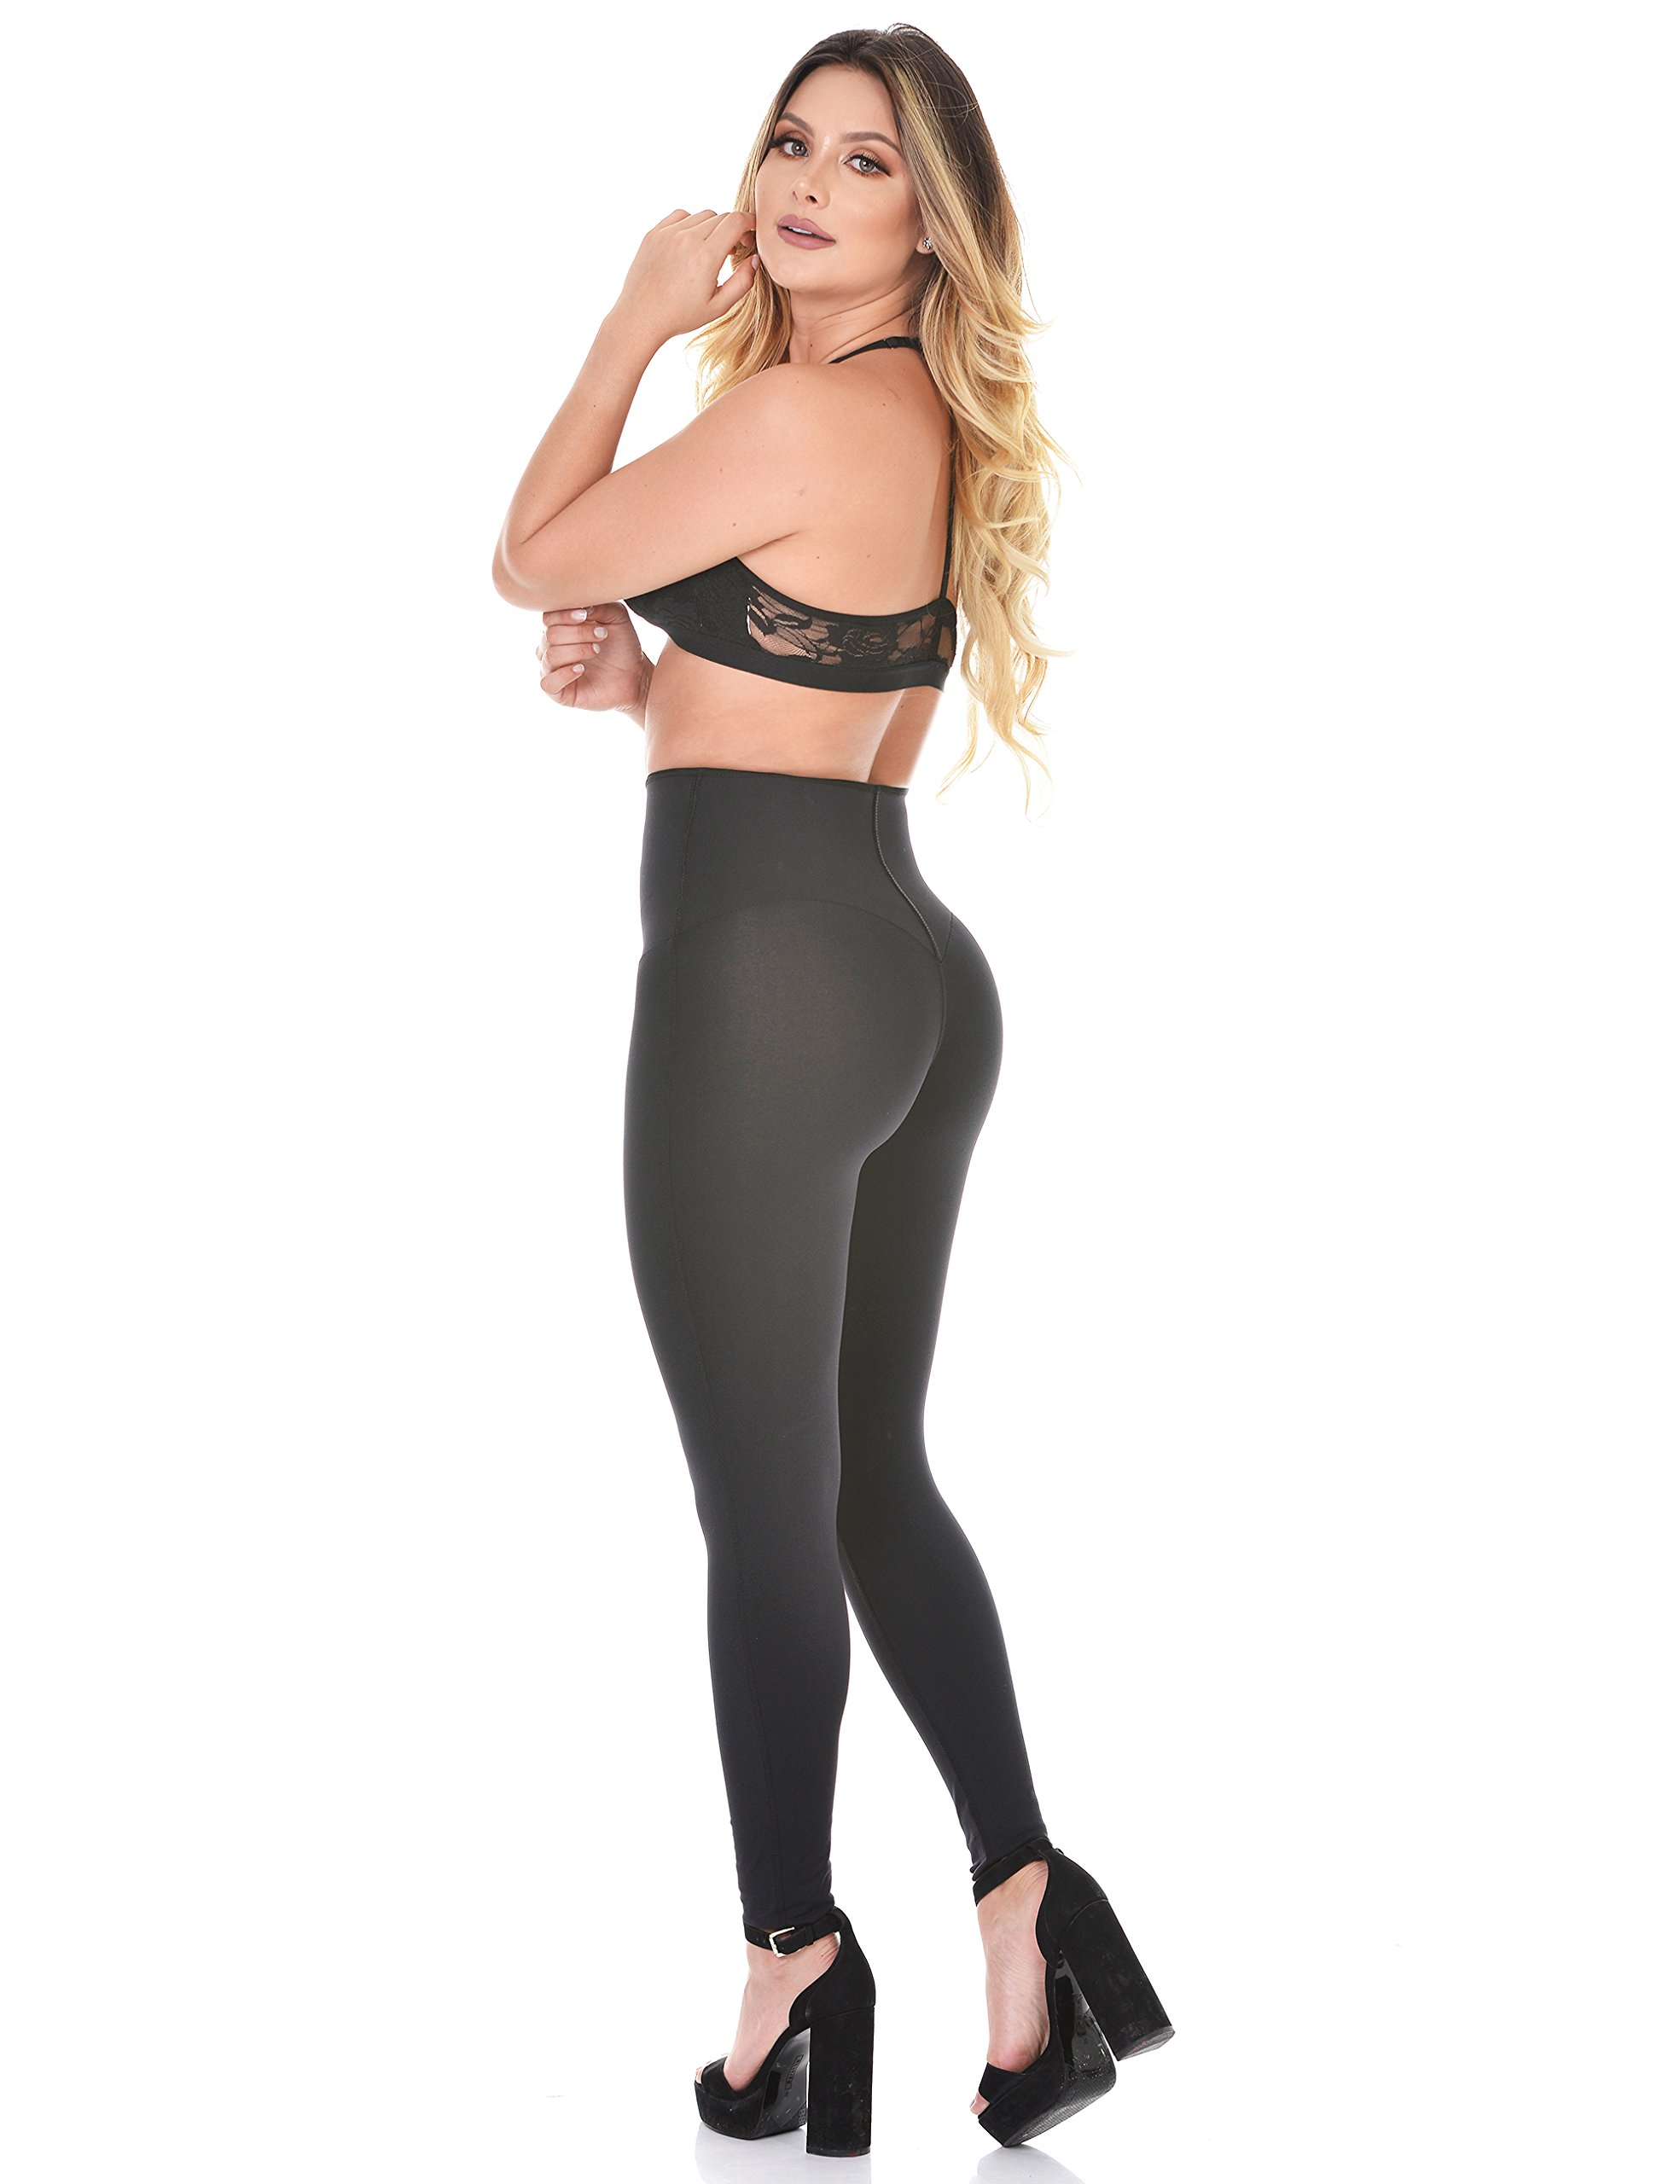 Curvify Elegant High Waisted Womens Black Leggings With a Secret Latex Waist Band For an Hourglass Figure (Medium, Black, L112)